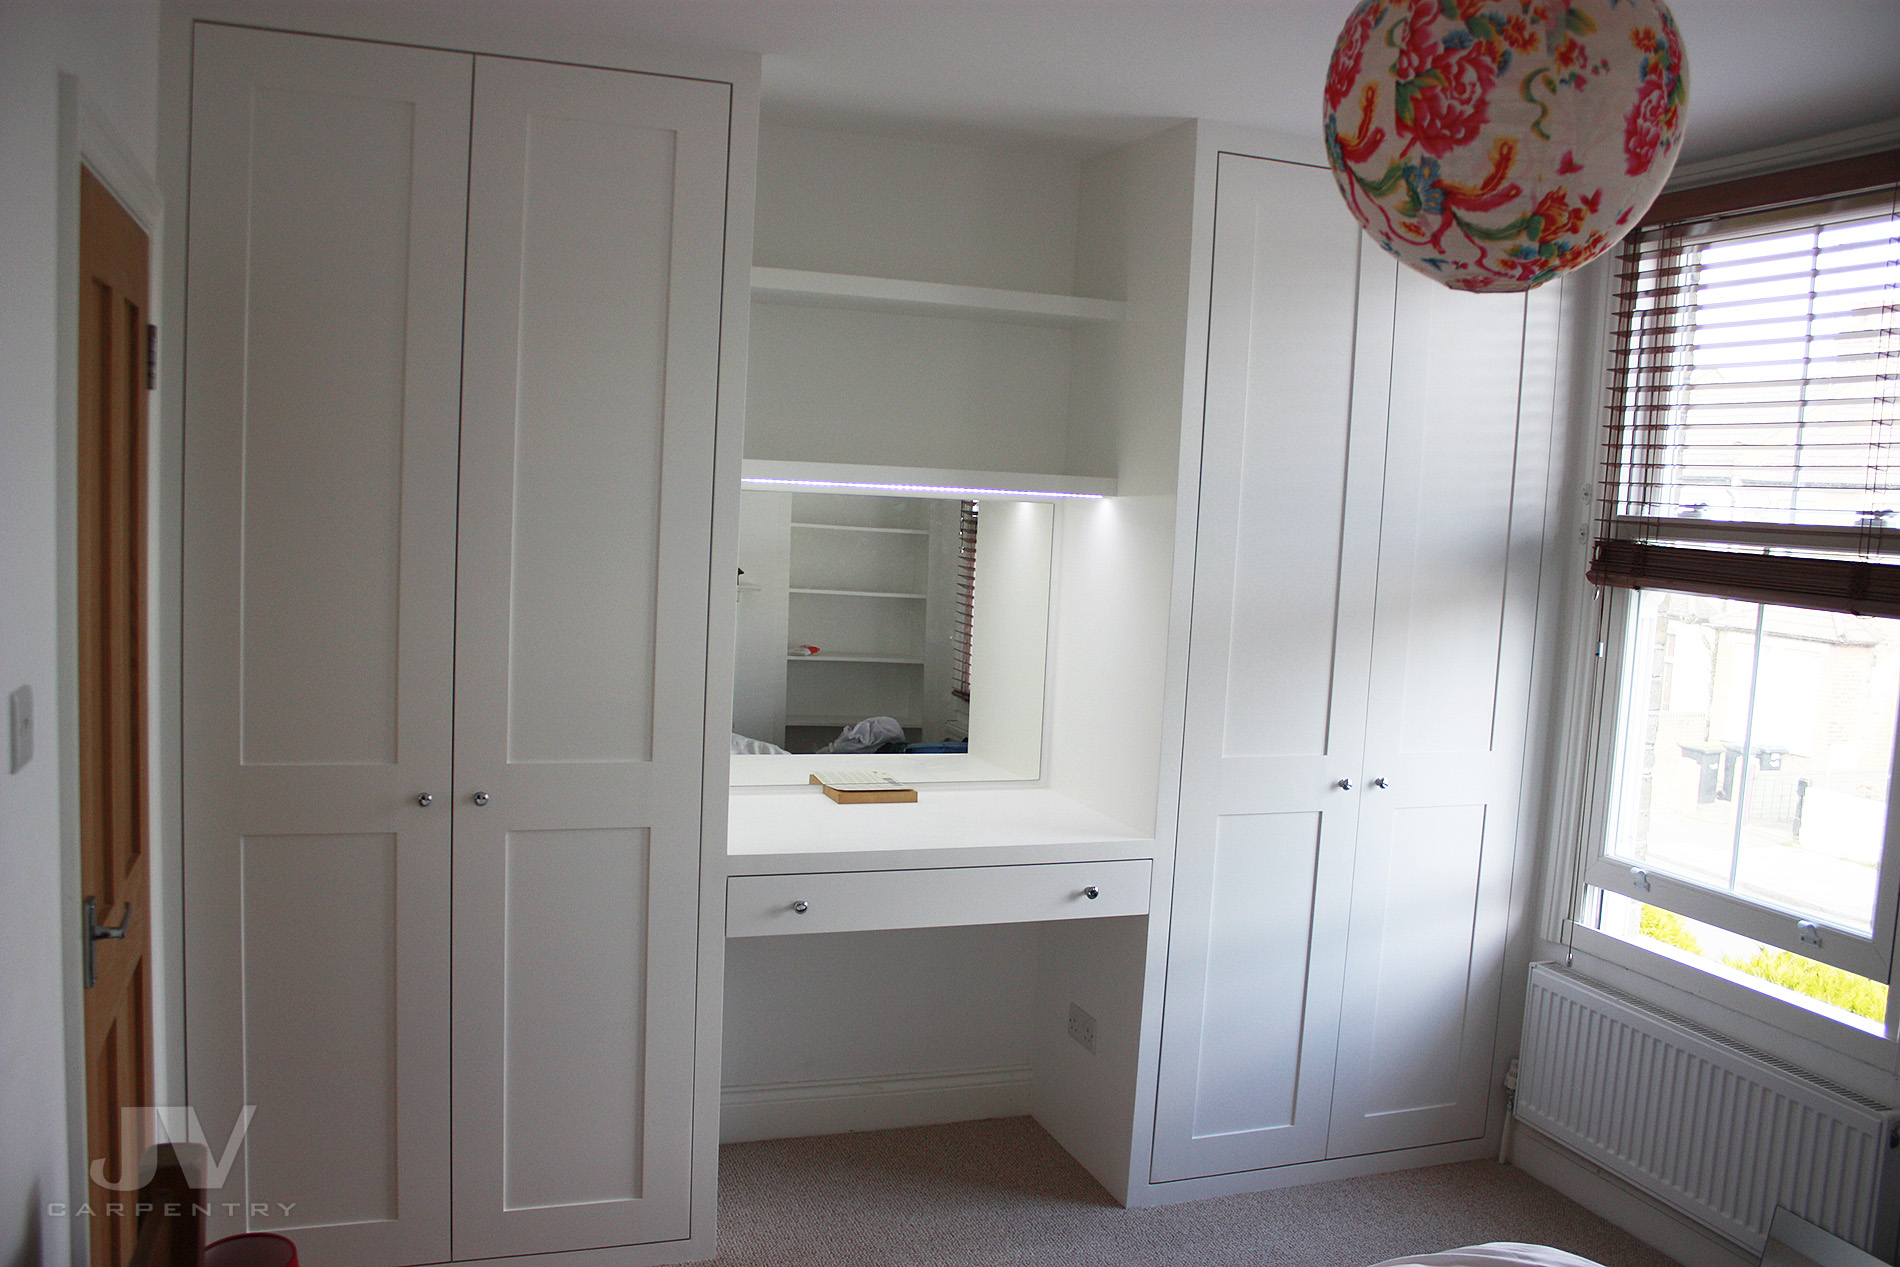 Dressing table fitted between two wardrobes